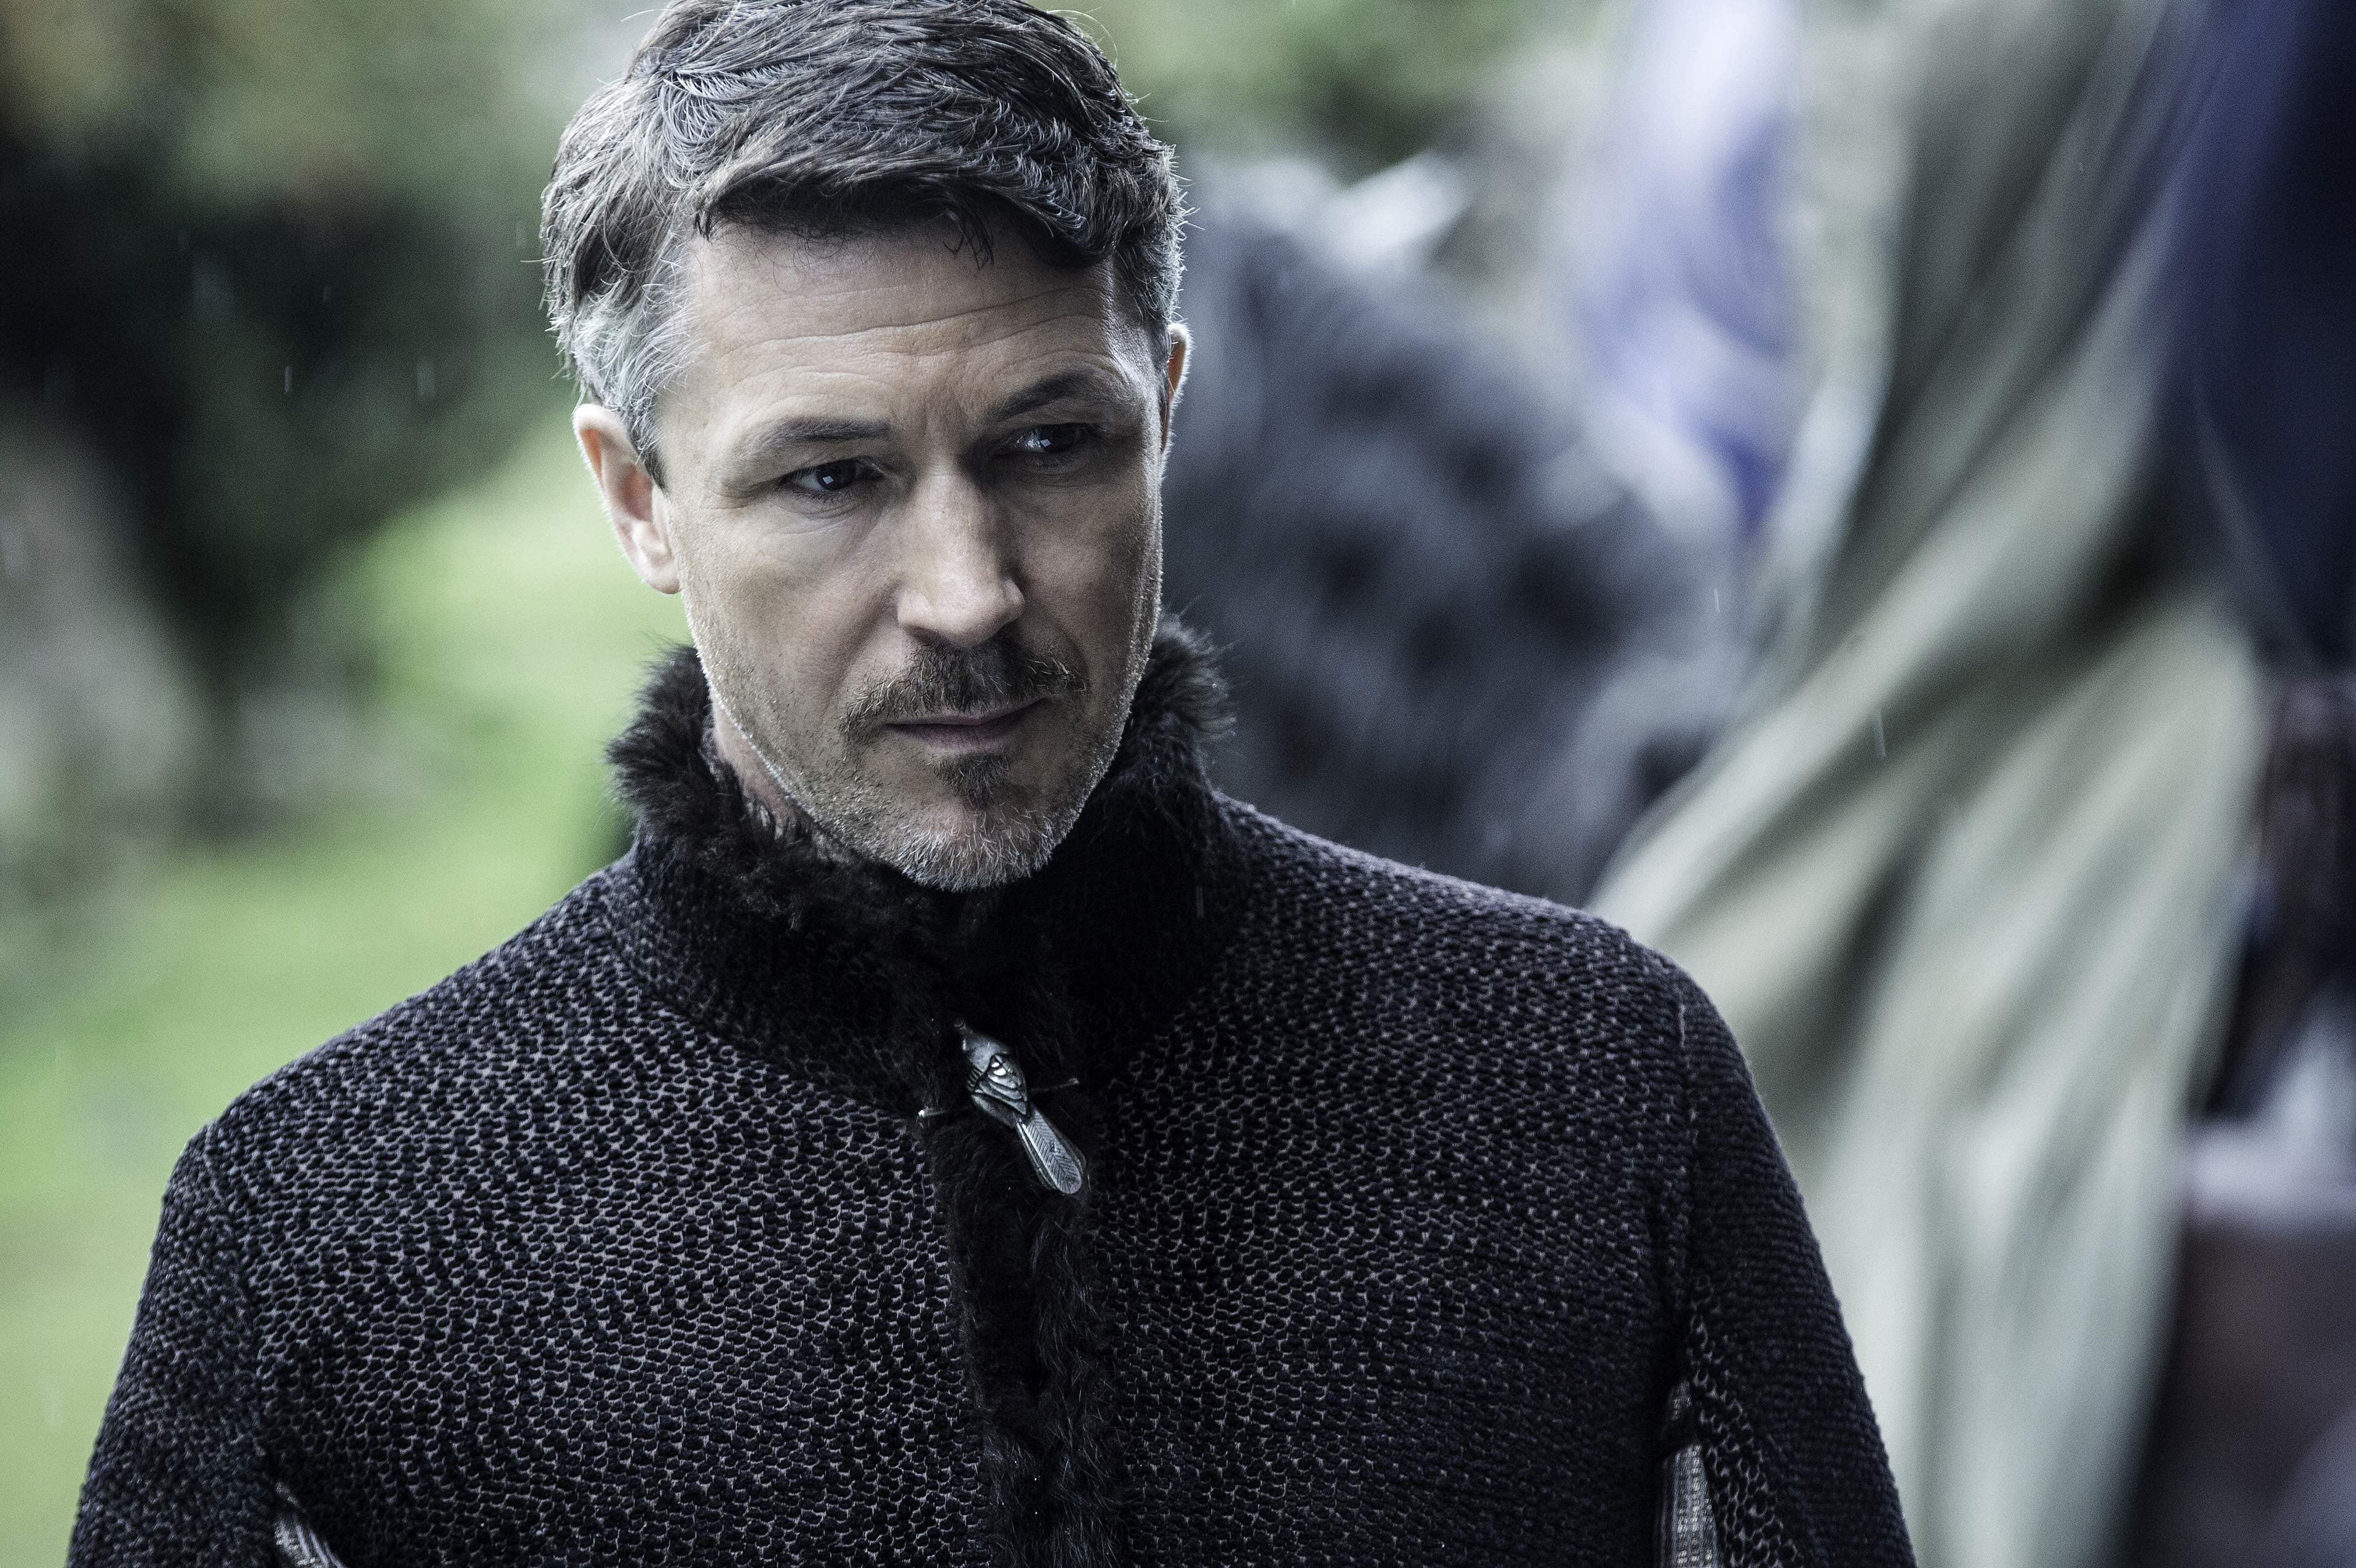 Bringing the GoT houses down: The masterplans of Petyr Baelish